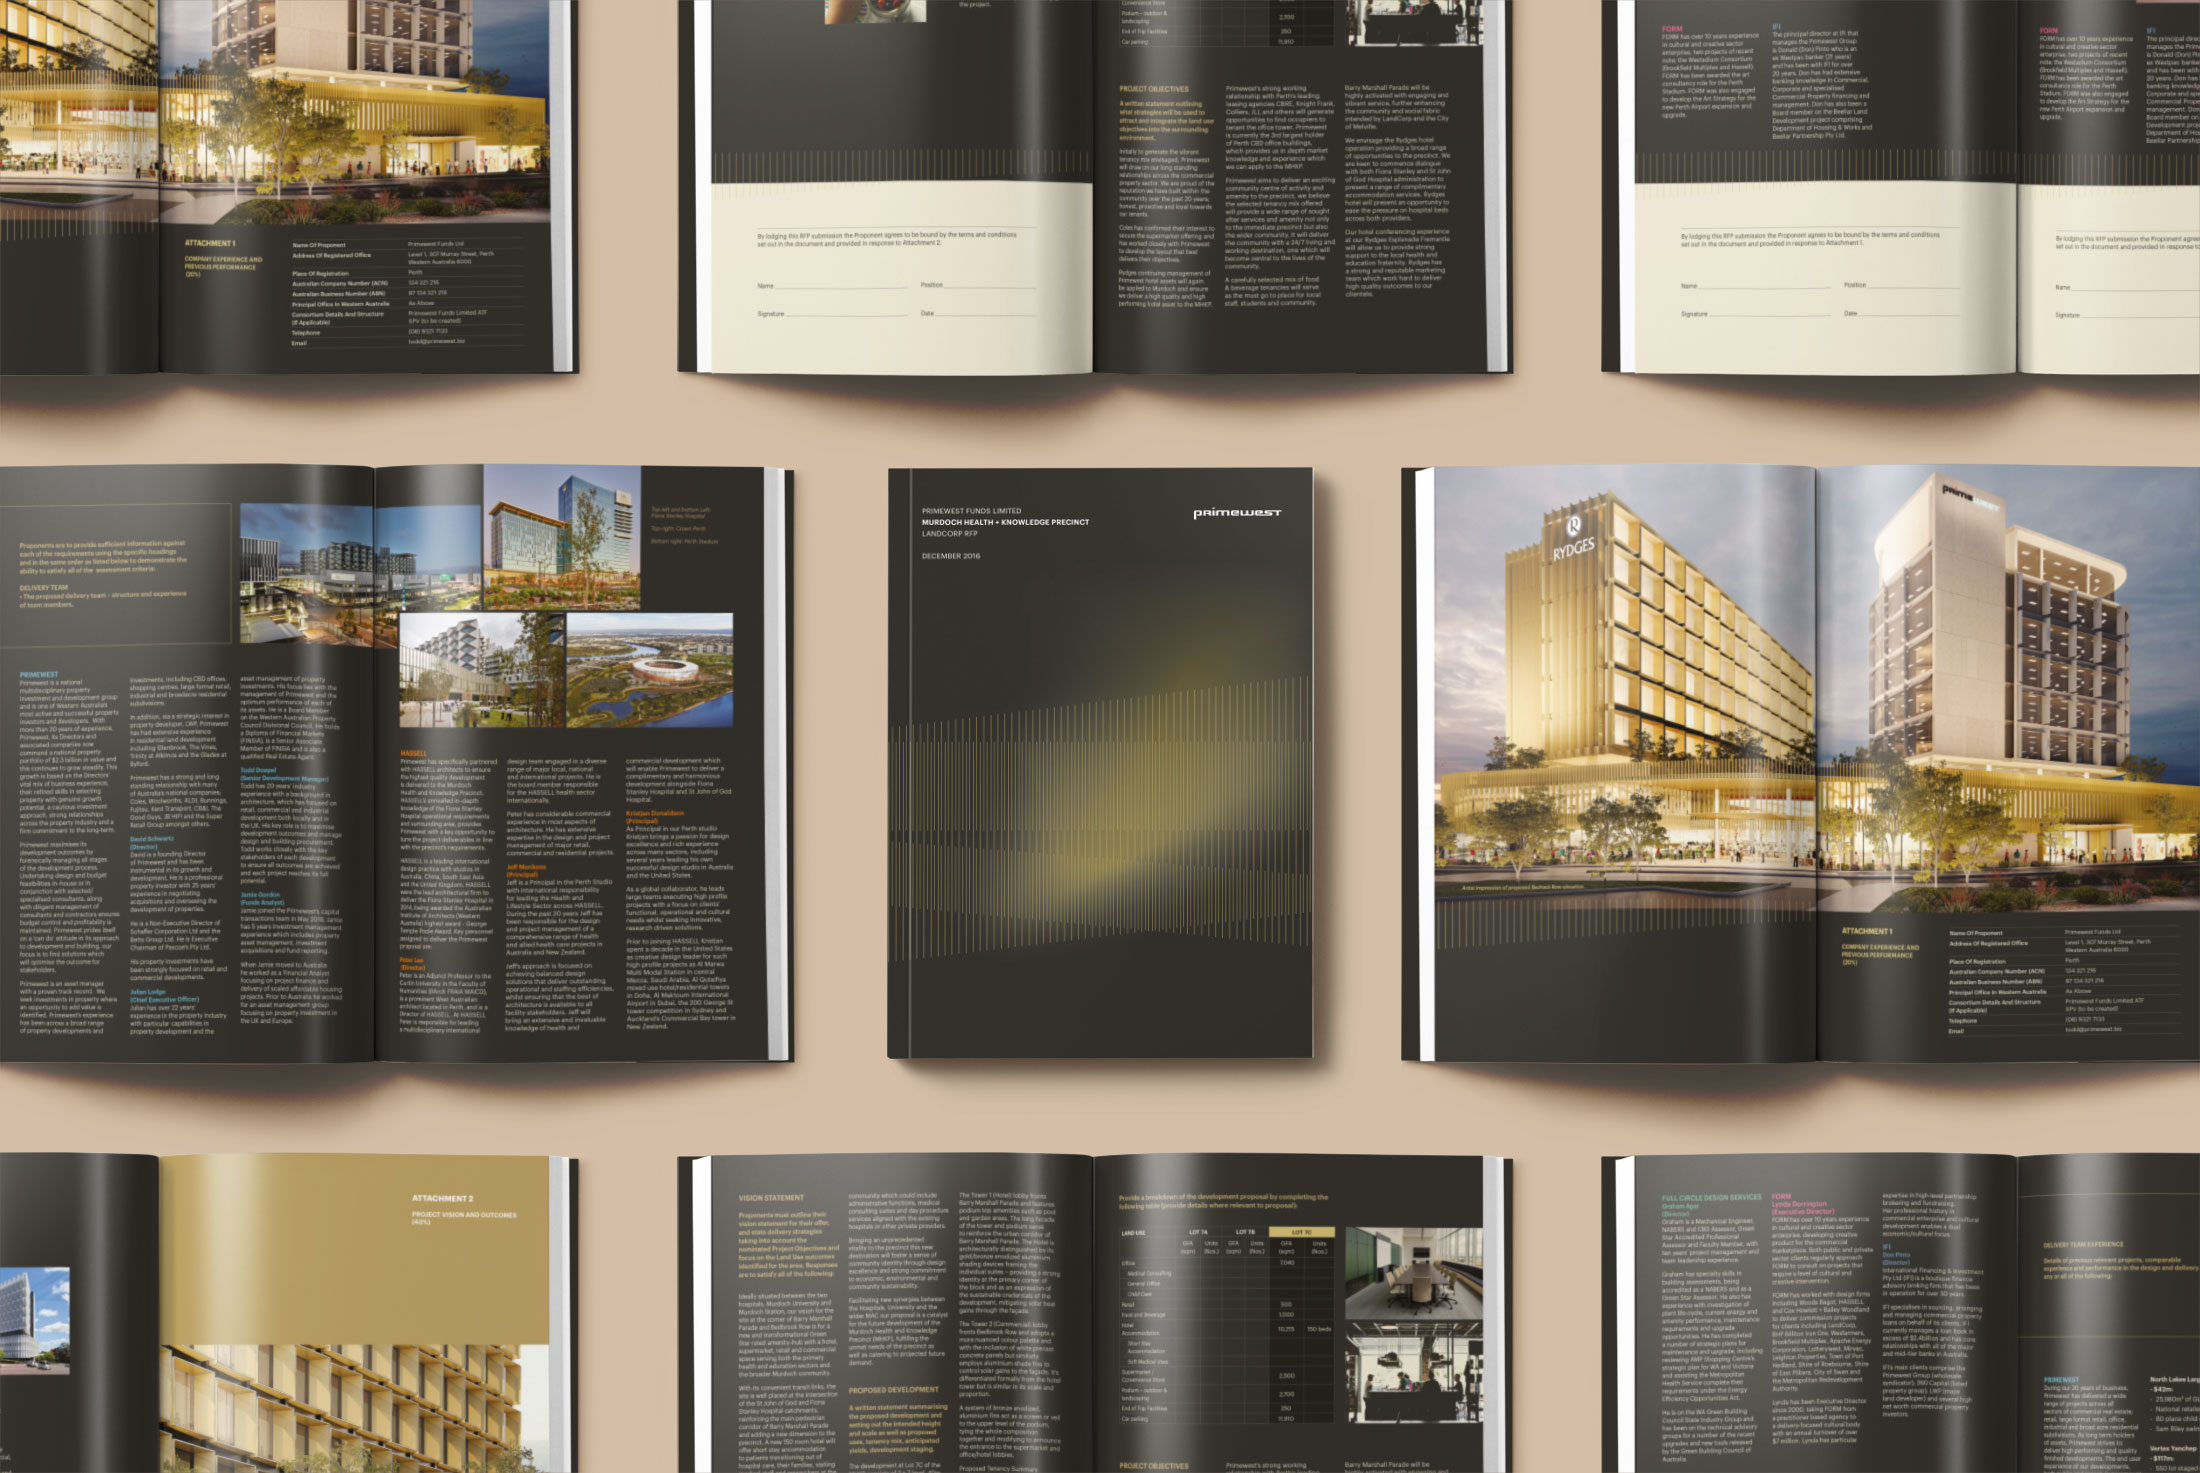 Primewest – Property Development Brochure